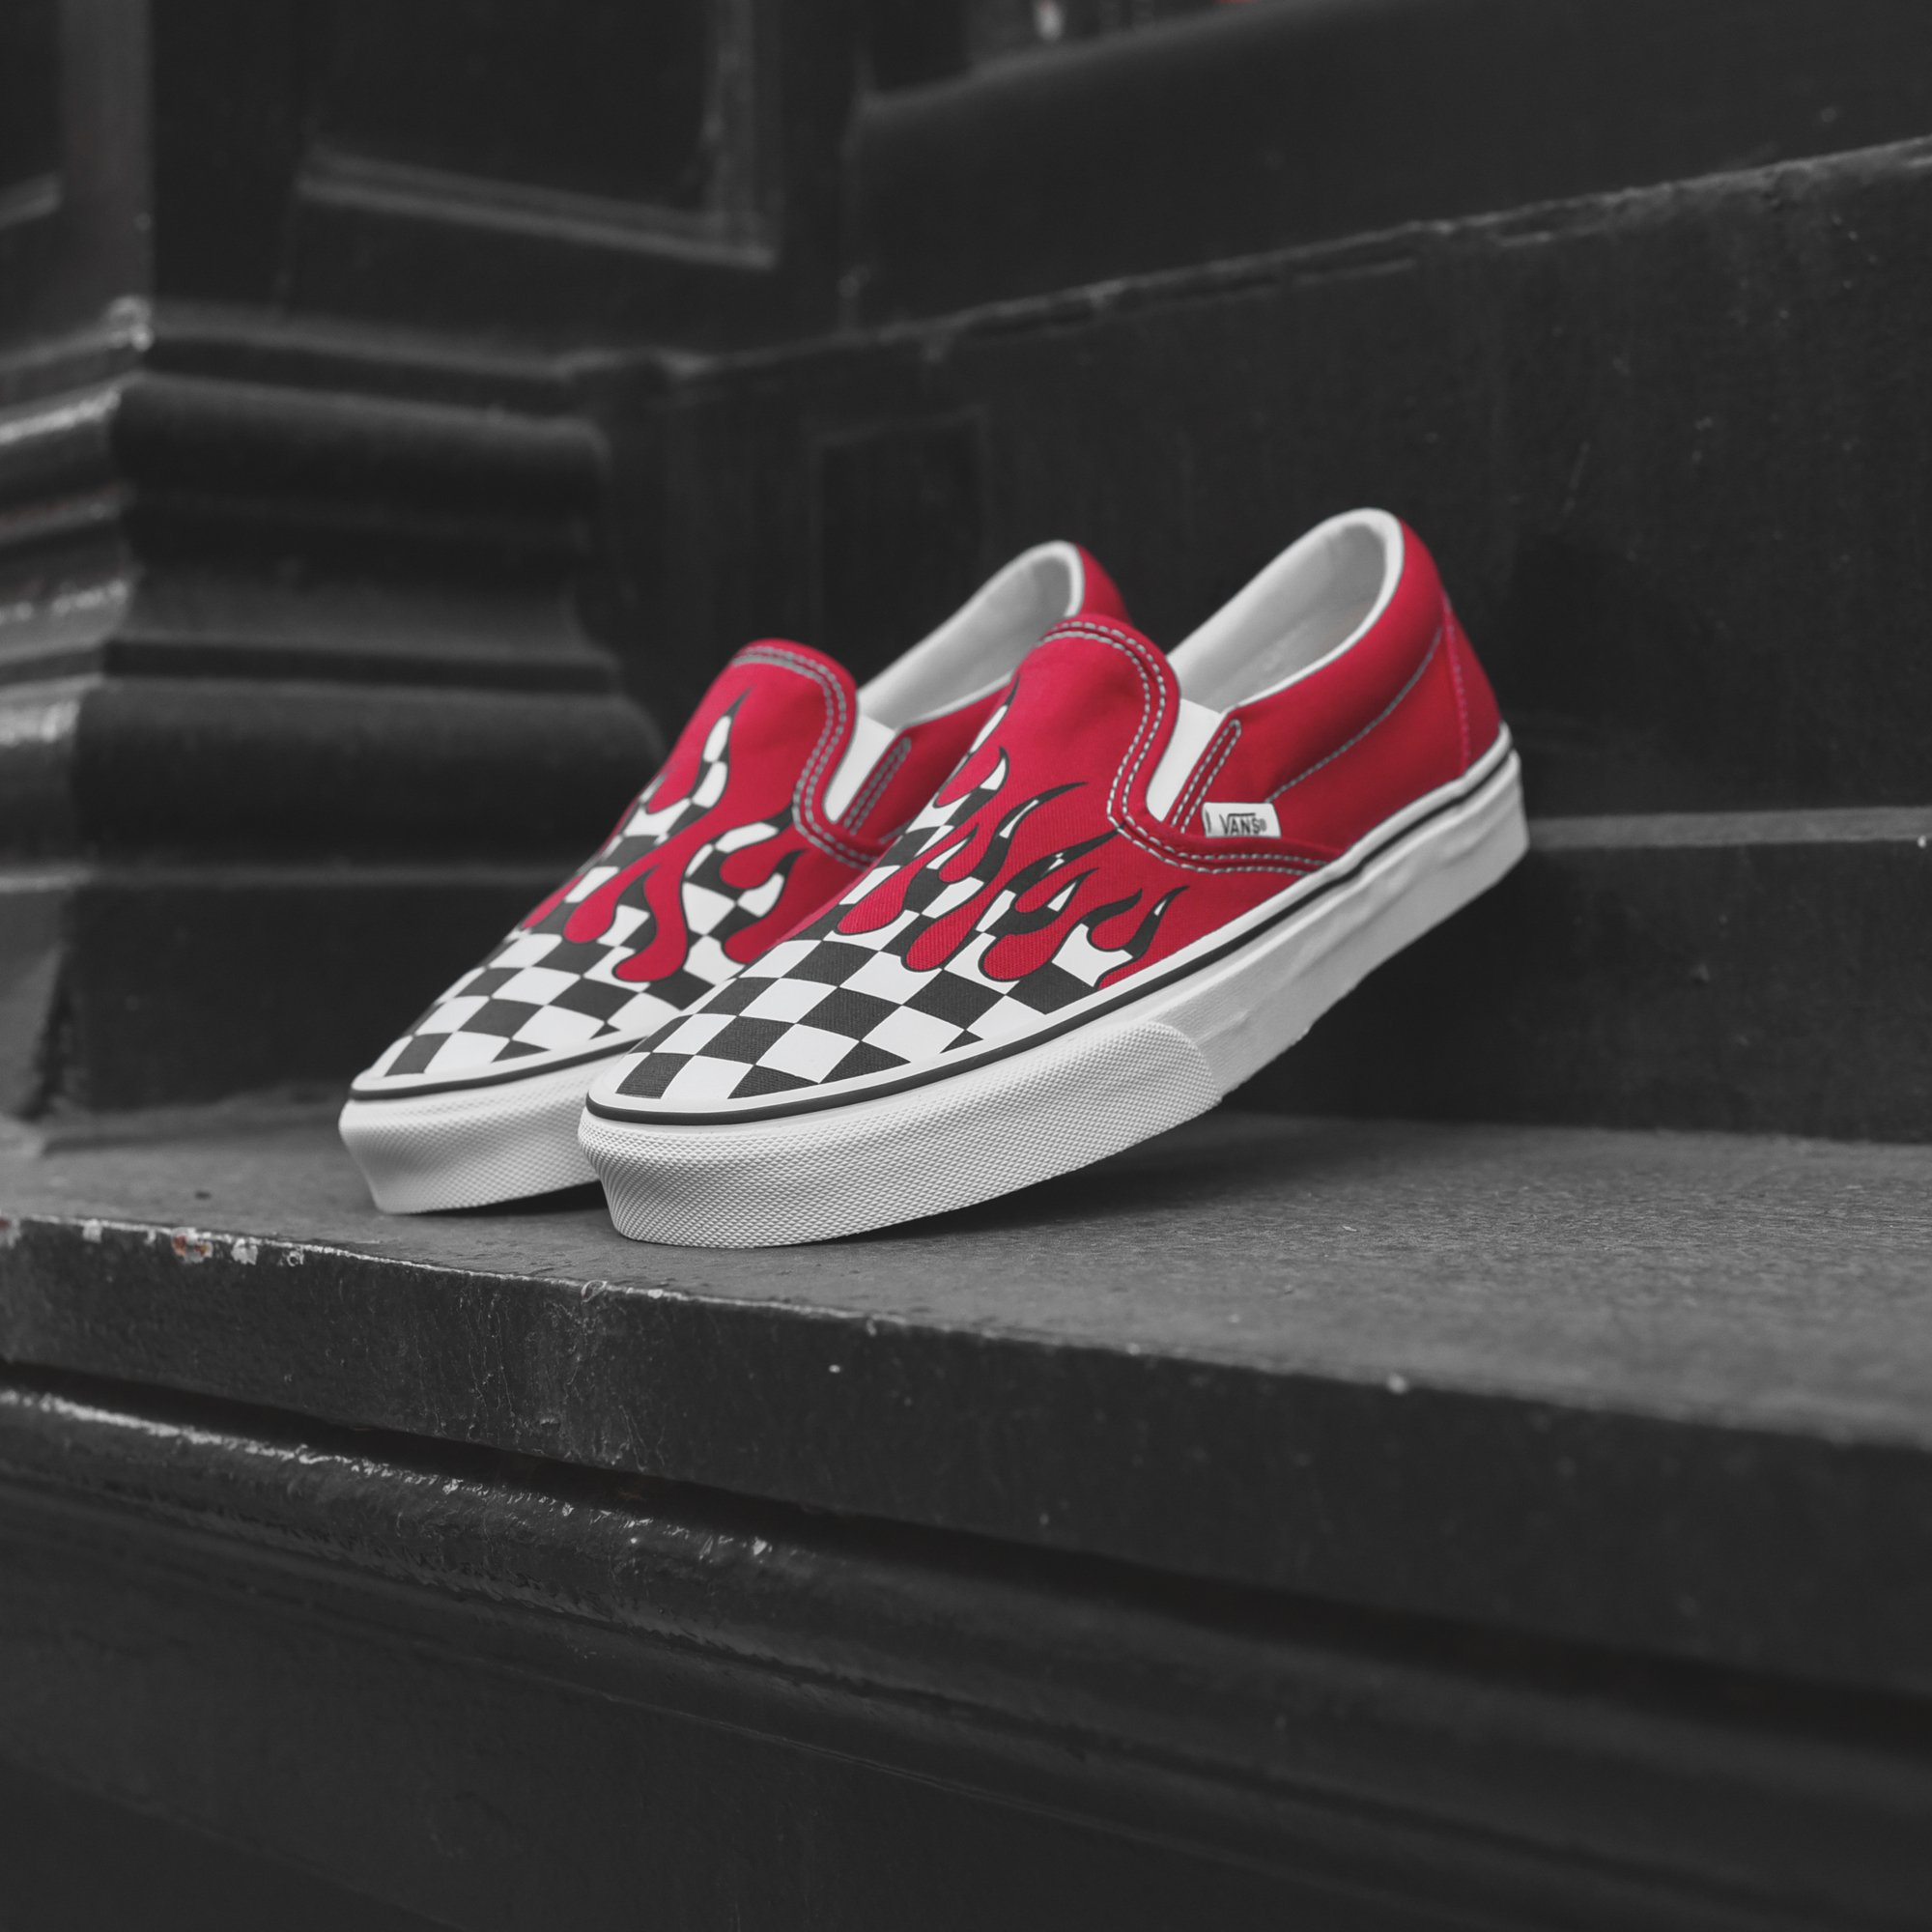 Top 10 red sneakers - Vans Checker Fame